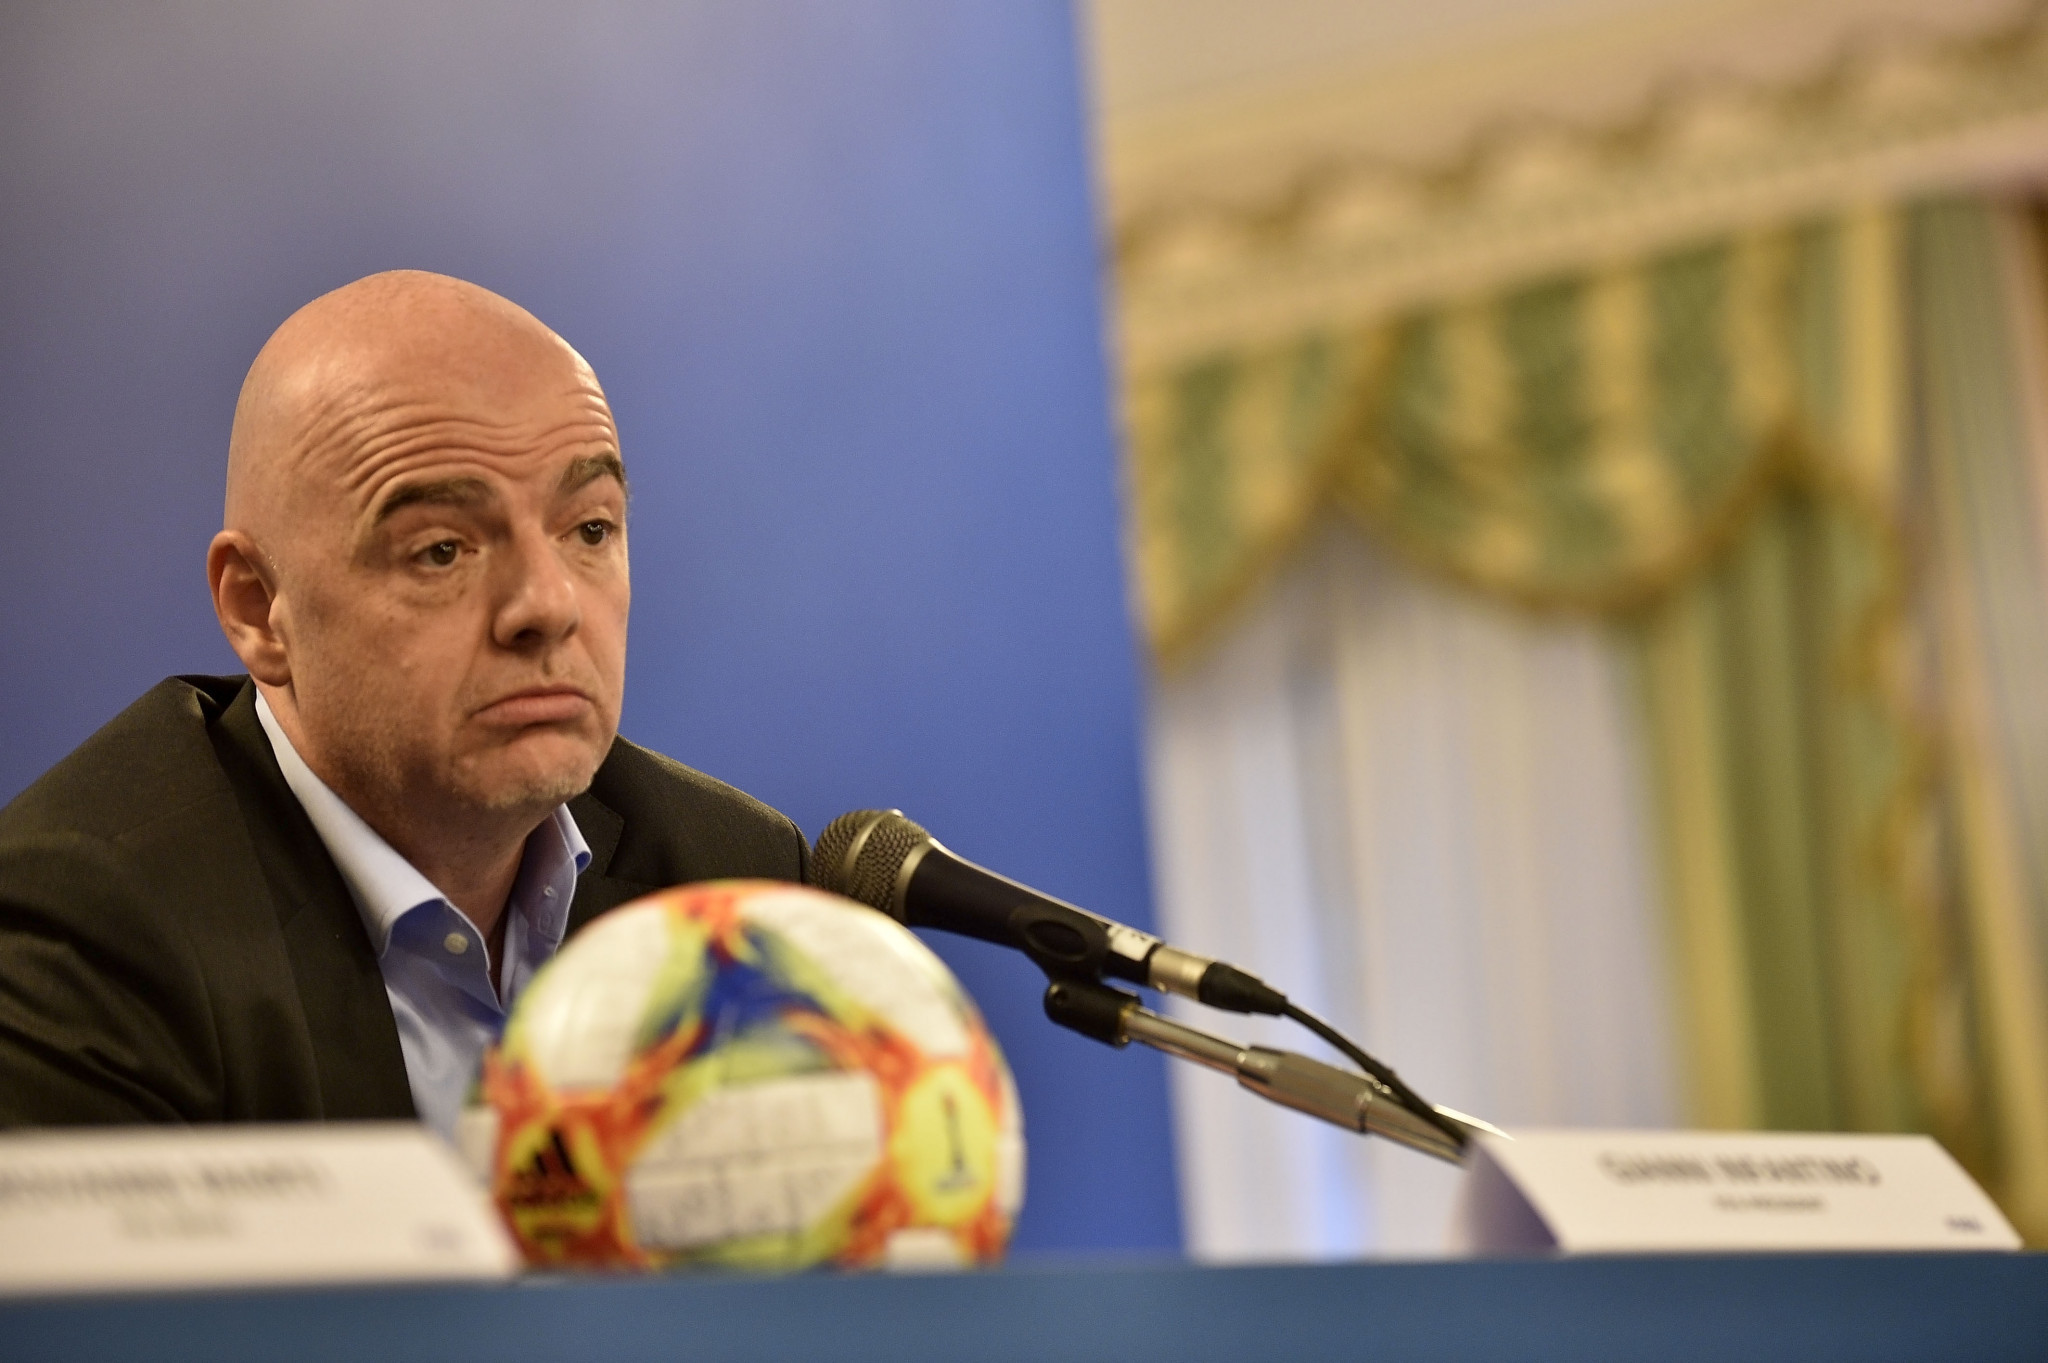 Amnesty International grouping urges FIFA President to ensure human rights standards if 2022 World Cup expands from Qatar